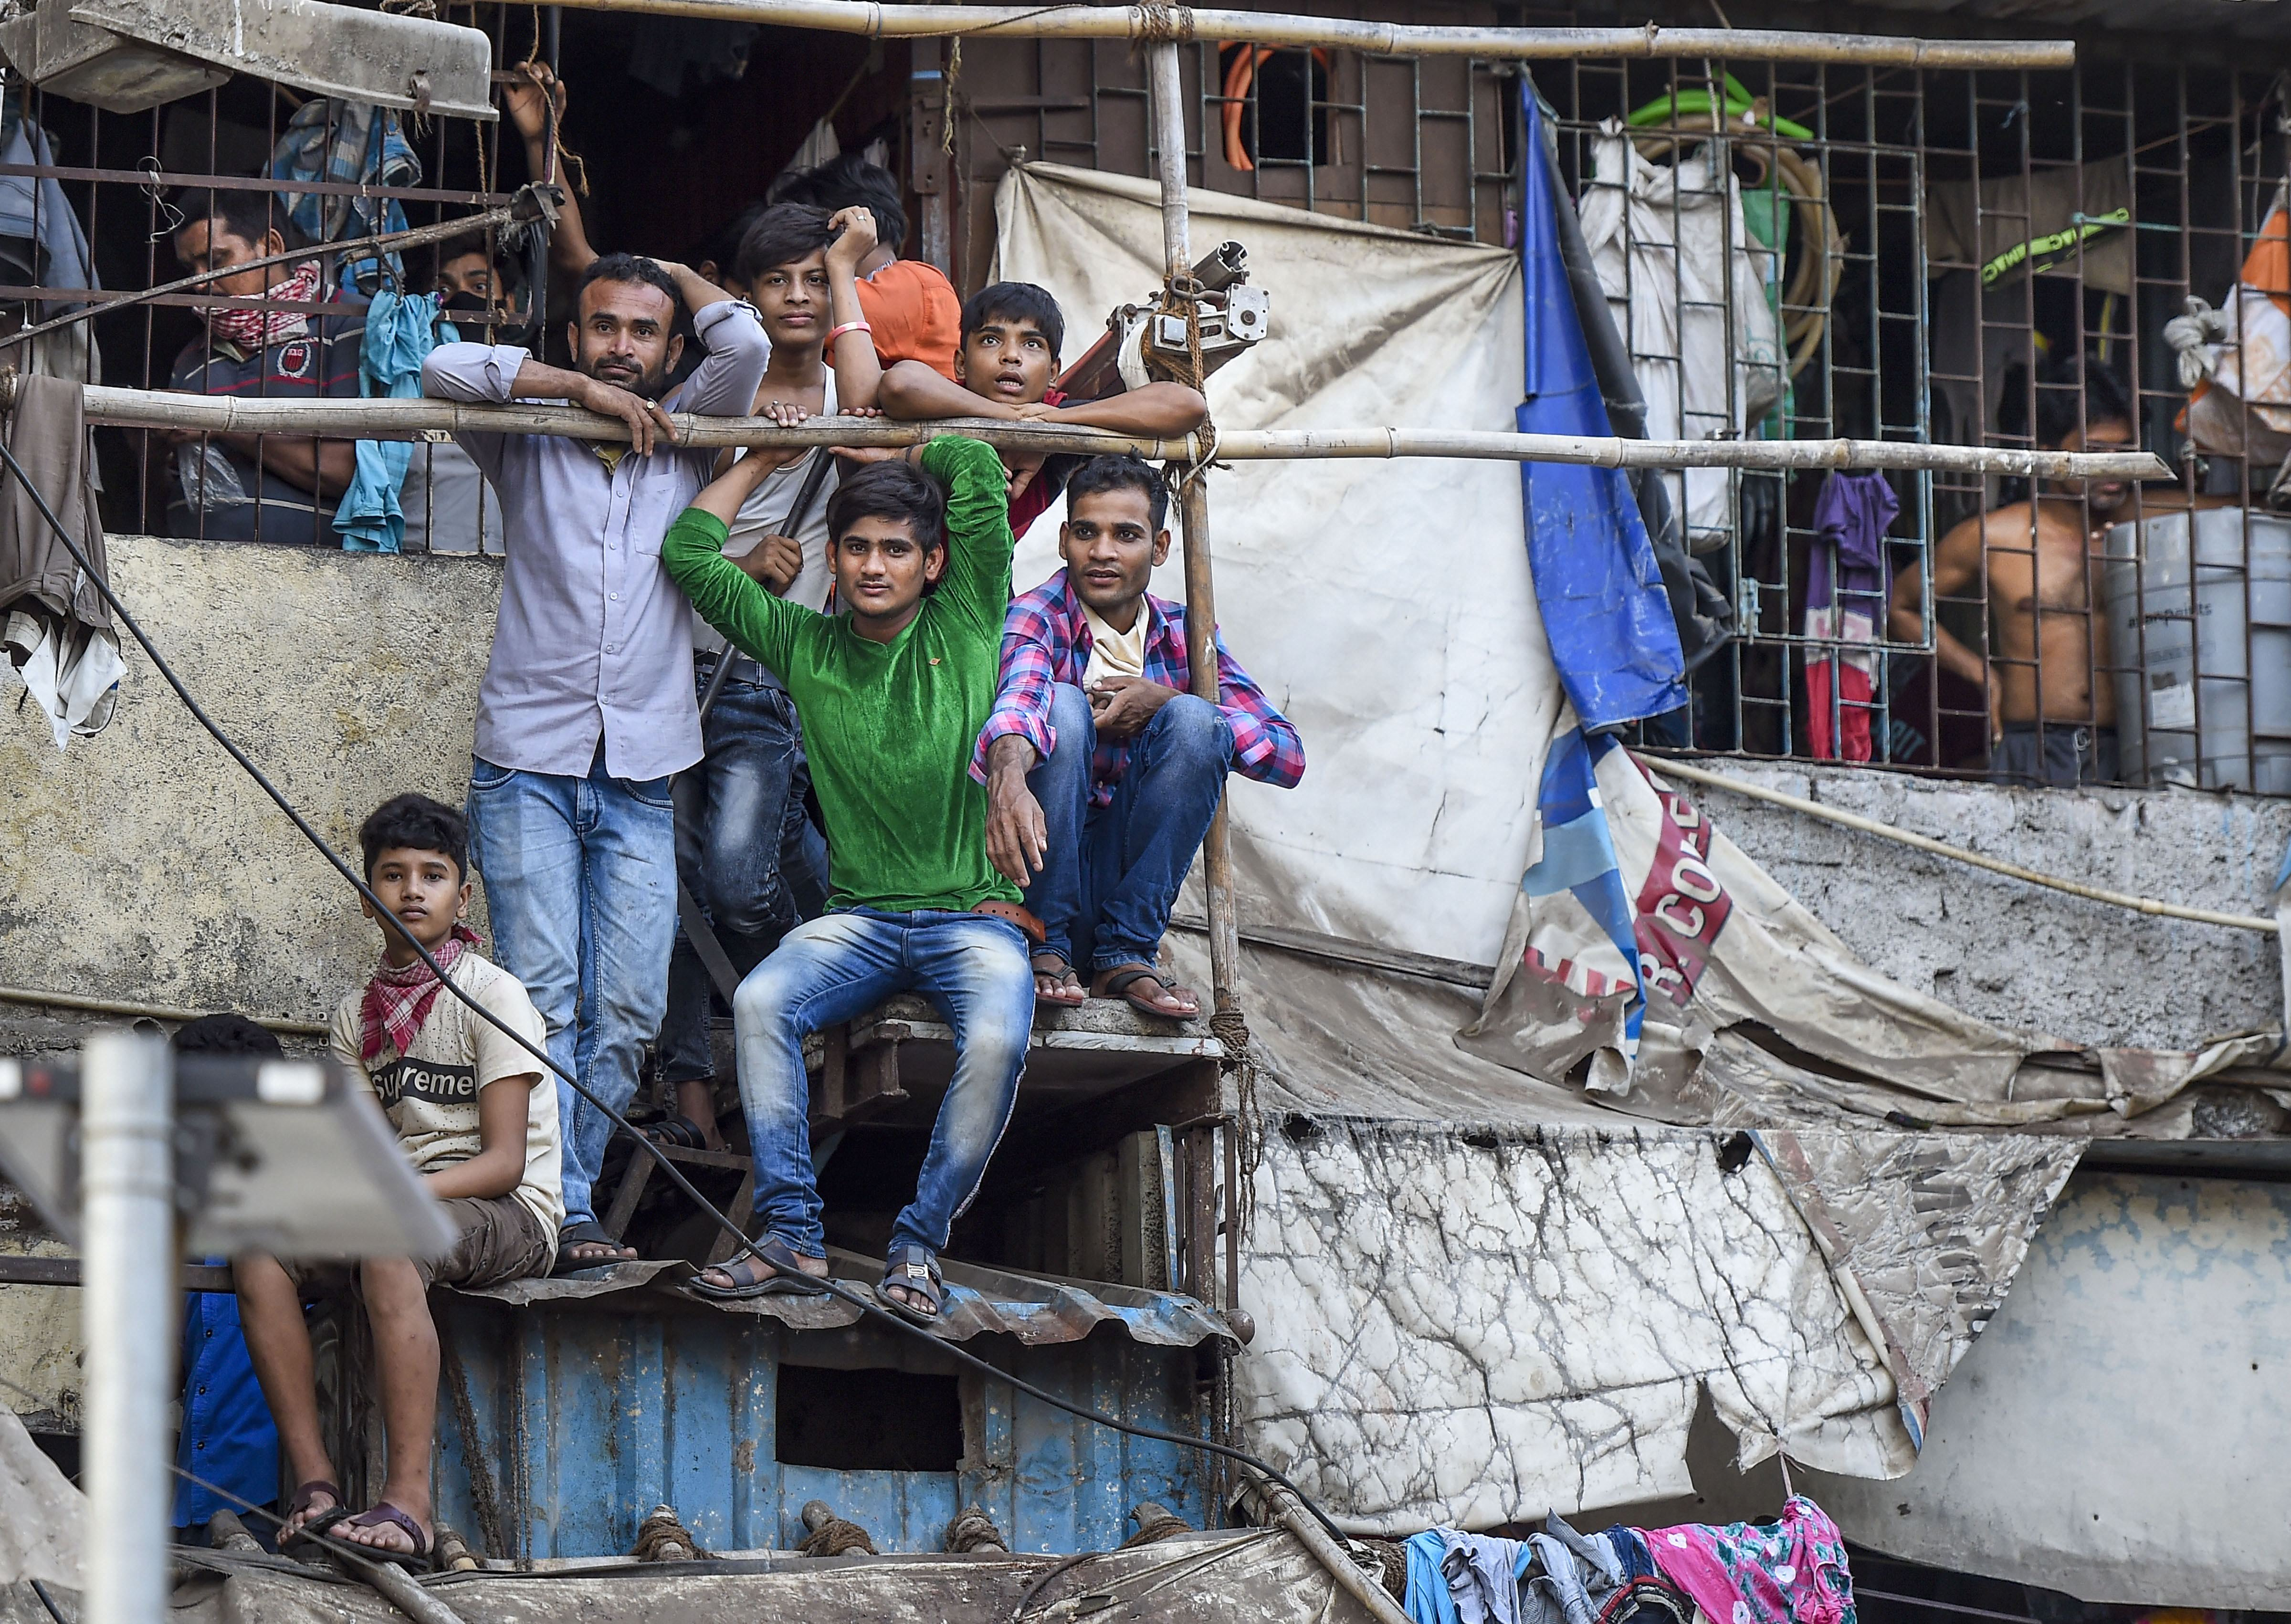 Families of workers look from their houses, after the extension of lockdown till May 3 in the wake of coronavirus pandemic, outside Bandra Railway Station in Mumbai, Tuesday, April 14, 2020.